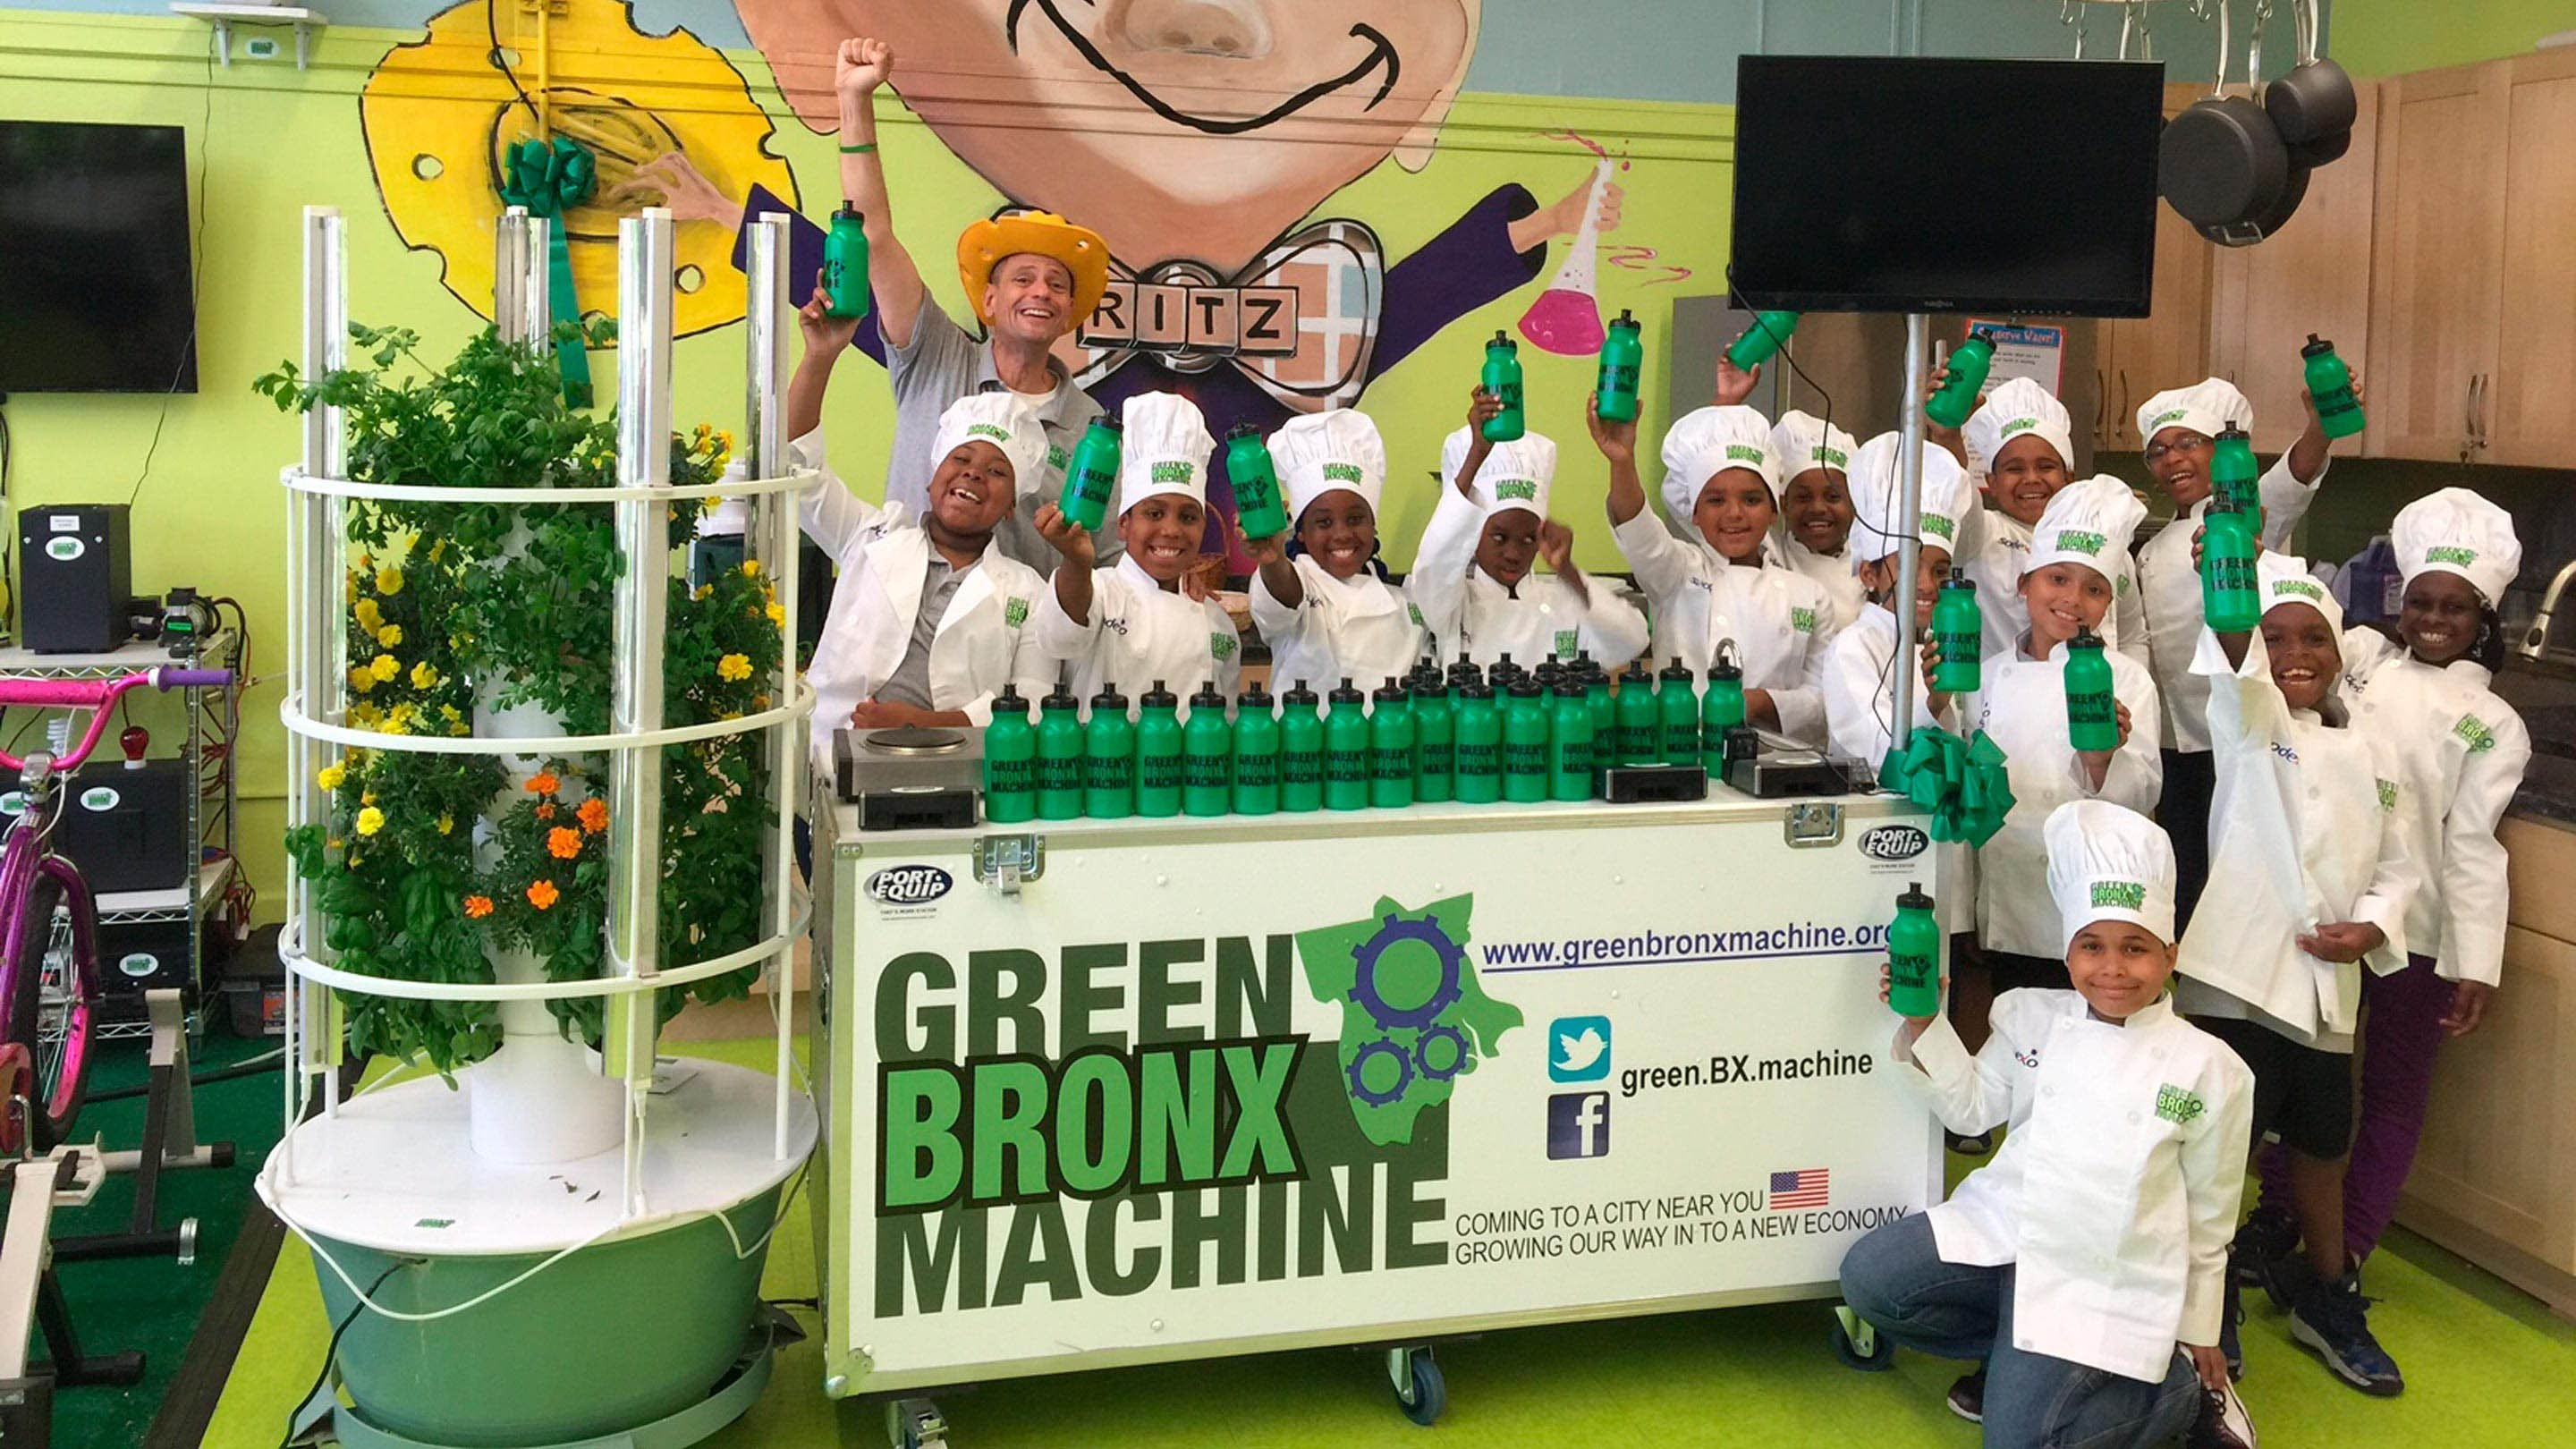 How A Bronx Teacher Started A Green Classroom Revolution That Is Spreading Across The U.S.